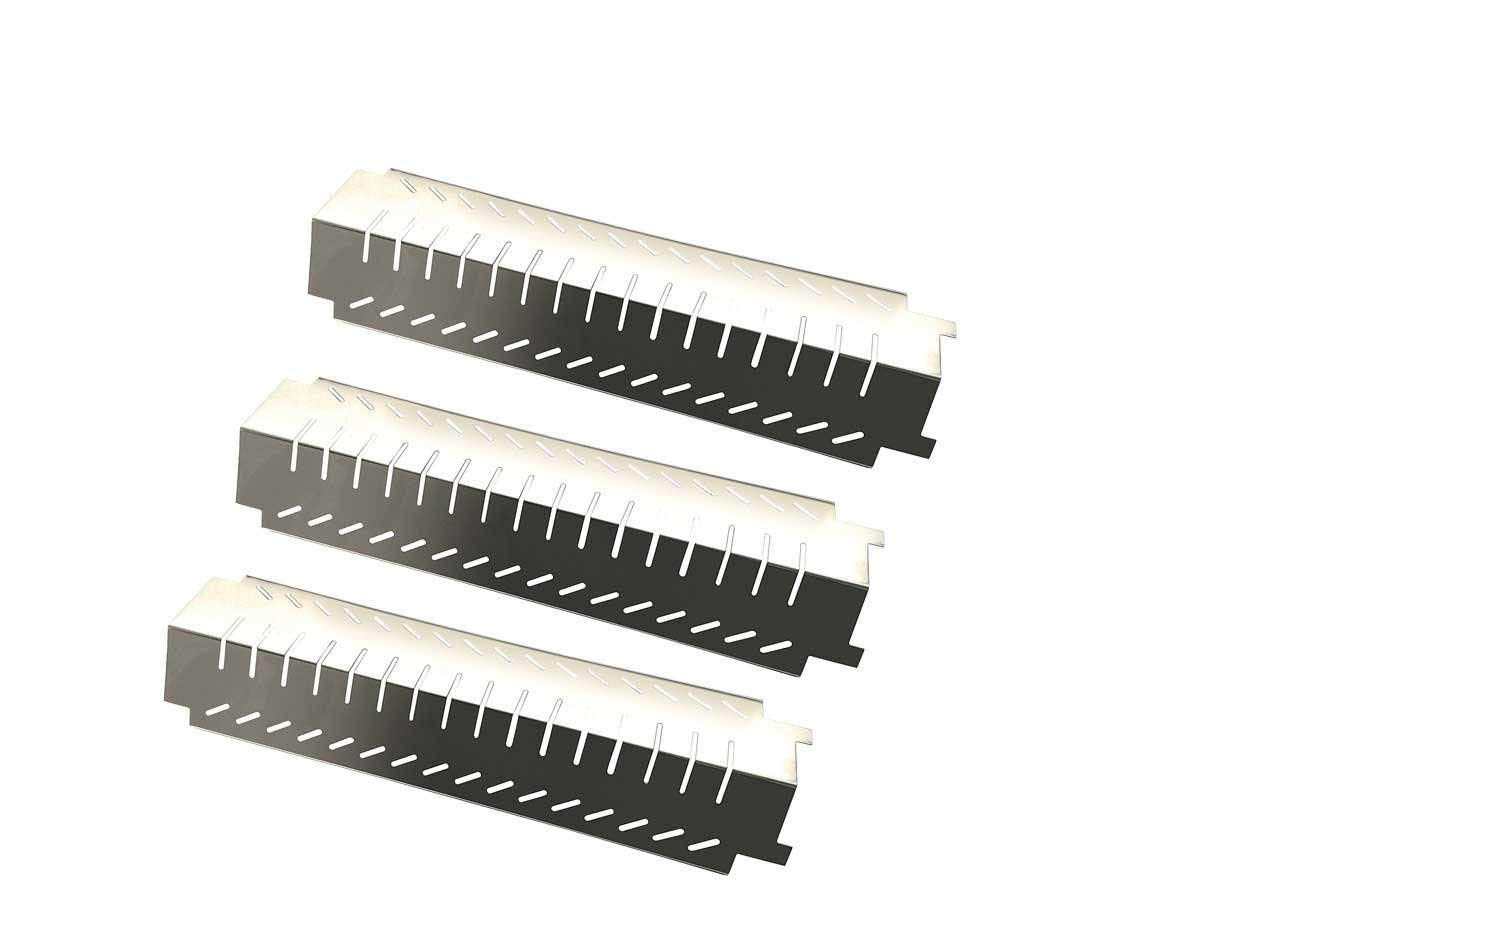 (3 PACK) Replacement Stainless Steel Heat Plate For Centro, Charbroil, Front Avenue, Kirkland and Thermos Gas Grill Models grill parts